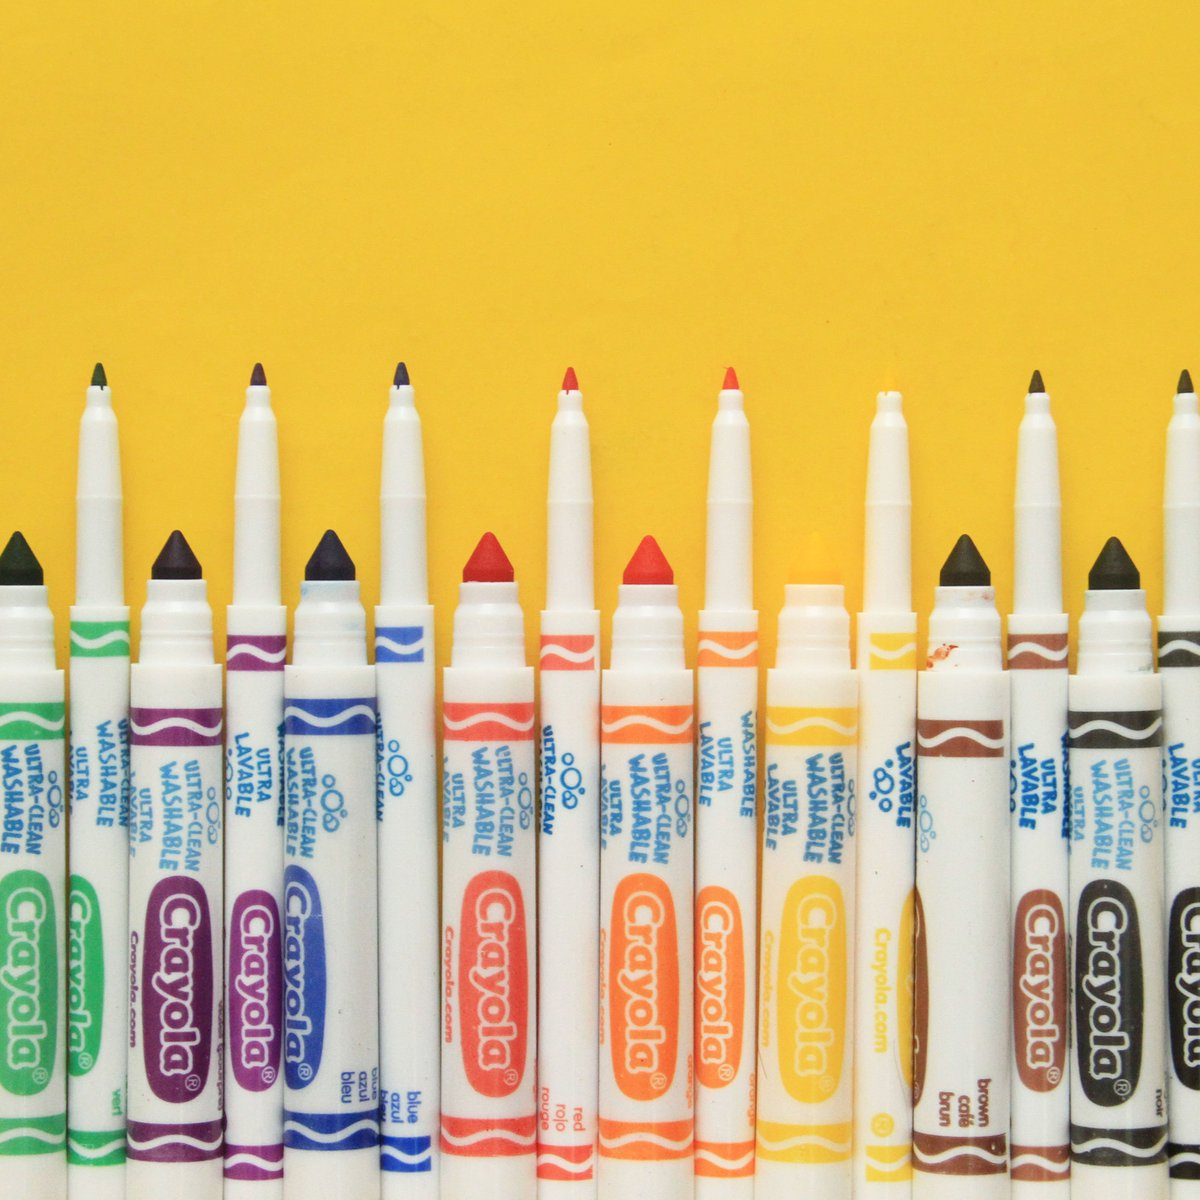 National Book Store On Twitter Backtoschoolwithnbs Crayola S Ultra Clean Washable Markers Brings All The Fun And Color Without The Hassle Of Stains Https T Co Vm2ubhoq1r